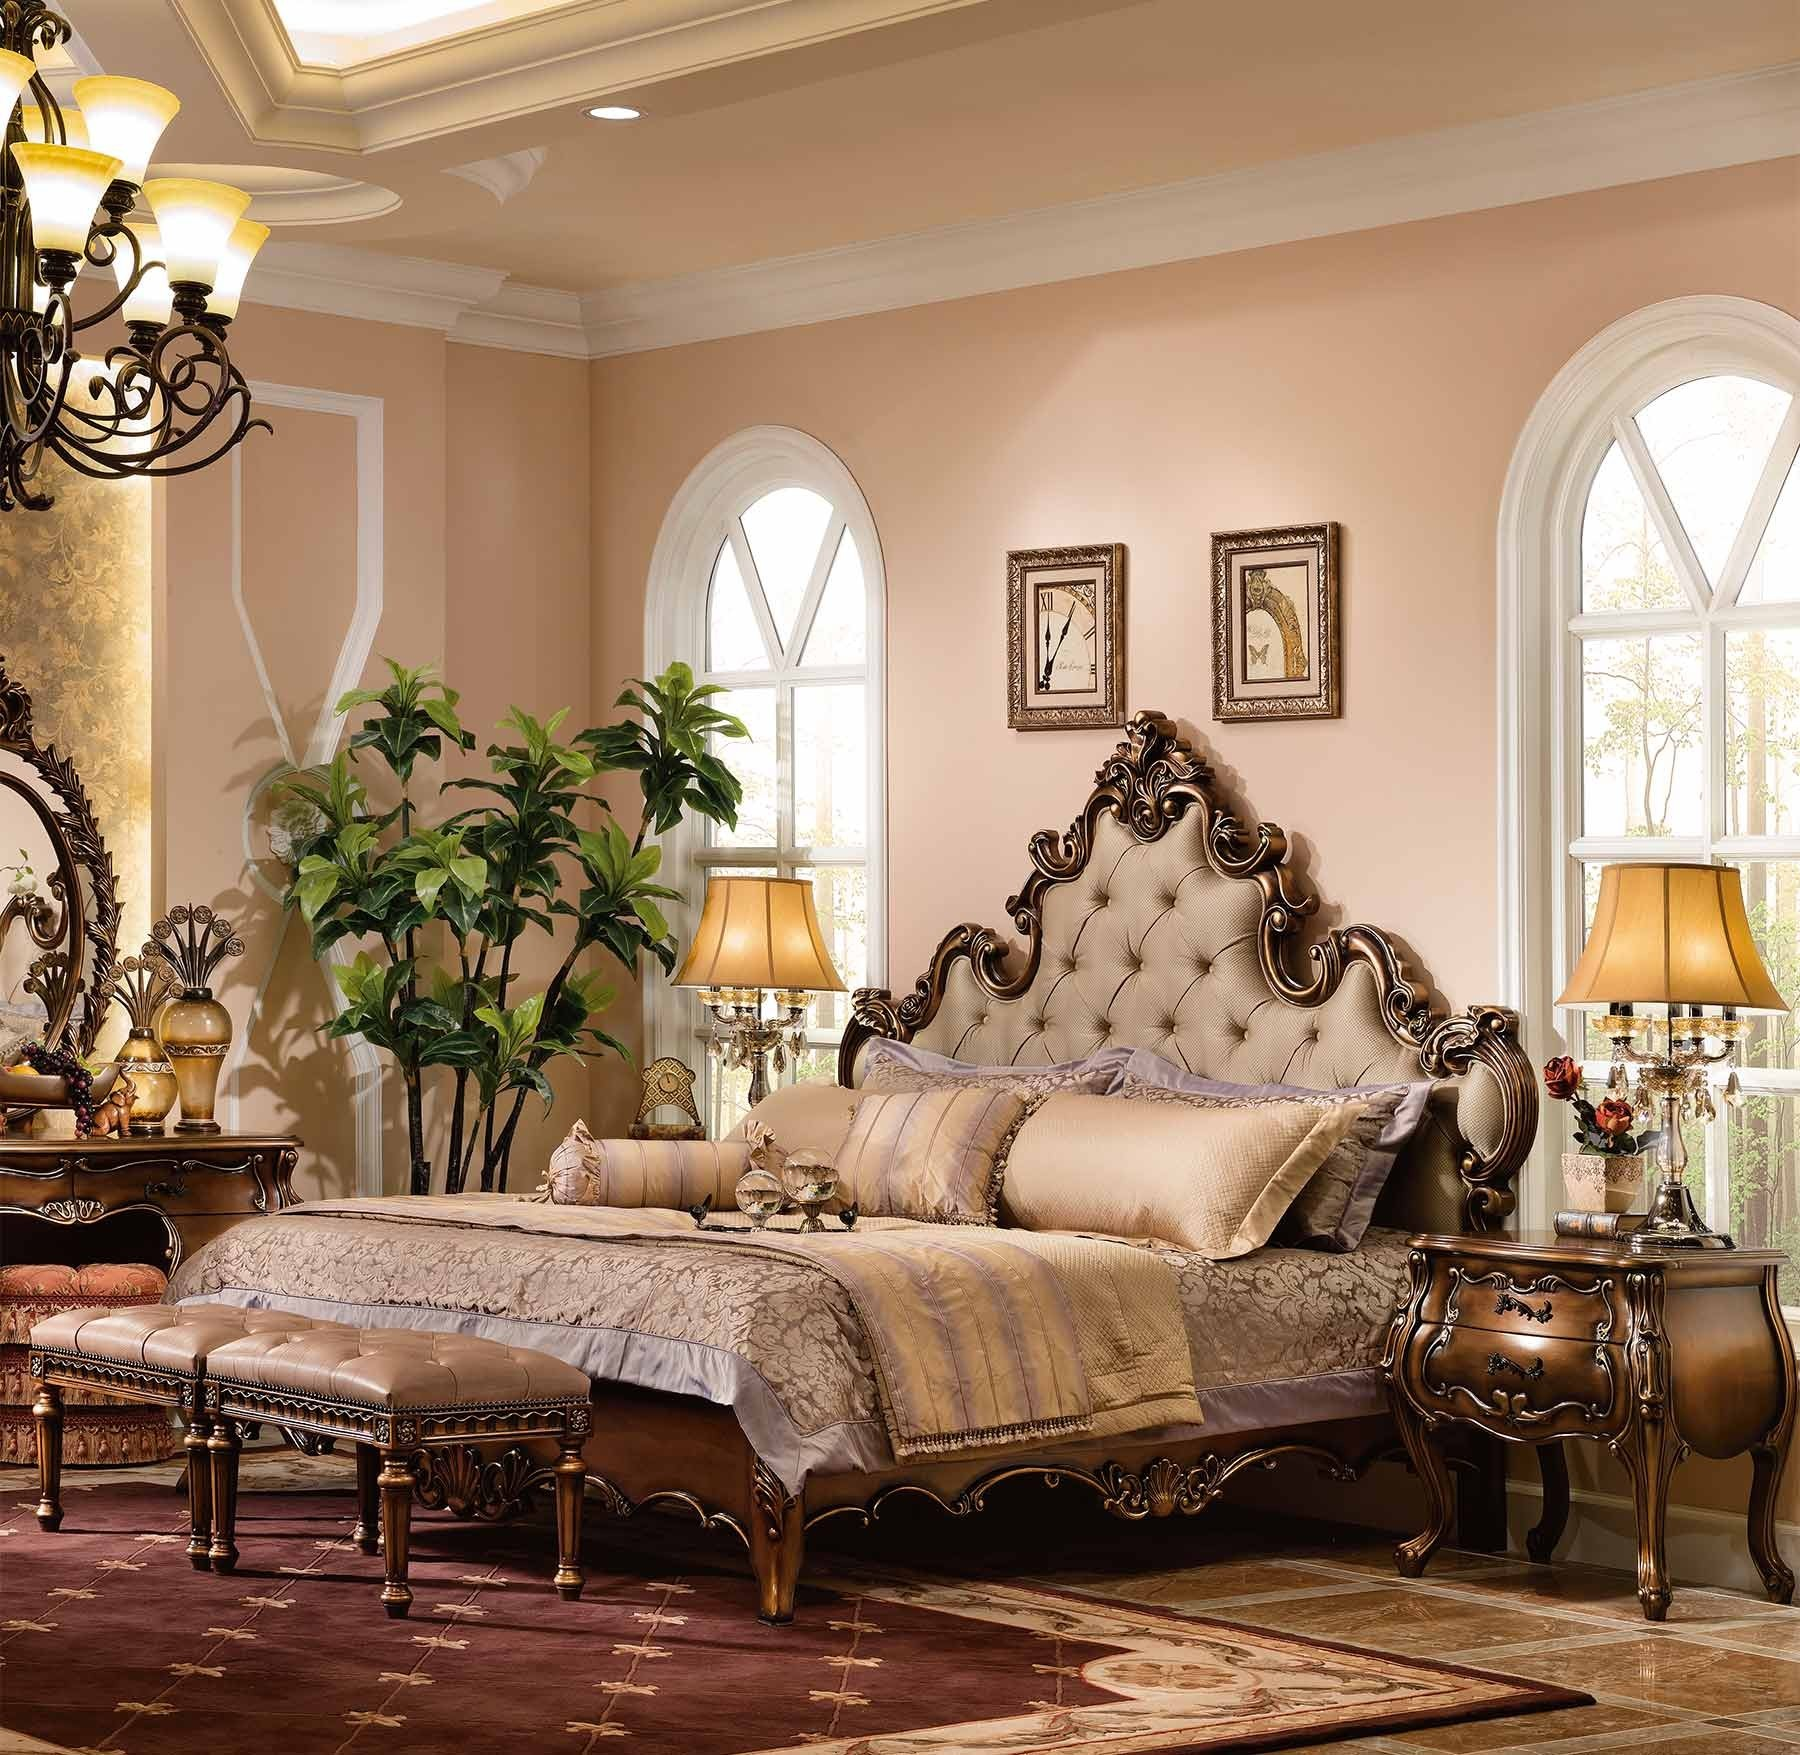 Augustine Bed shown in Parisian Bronze finish